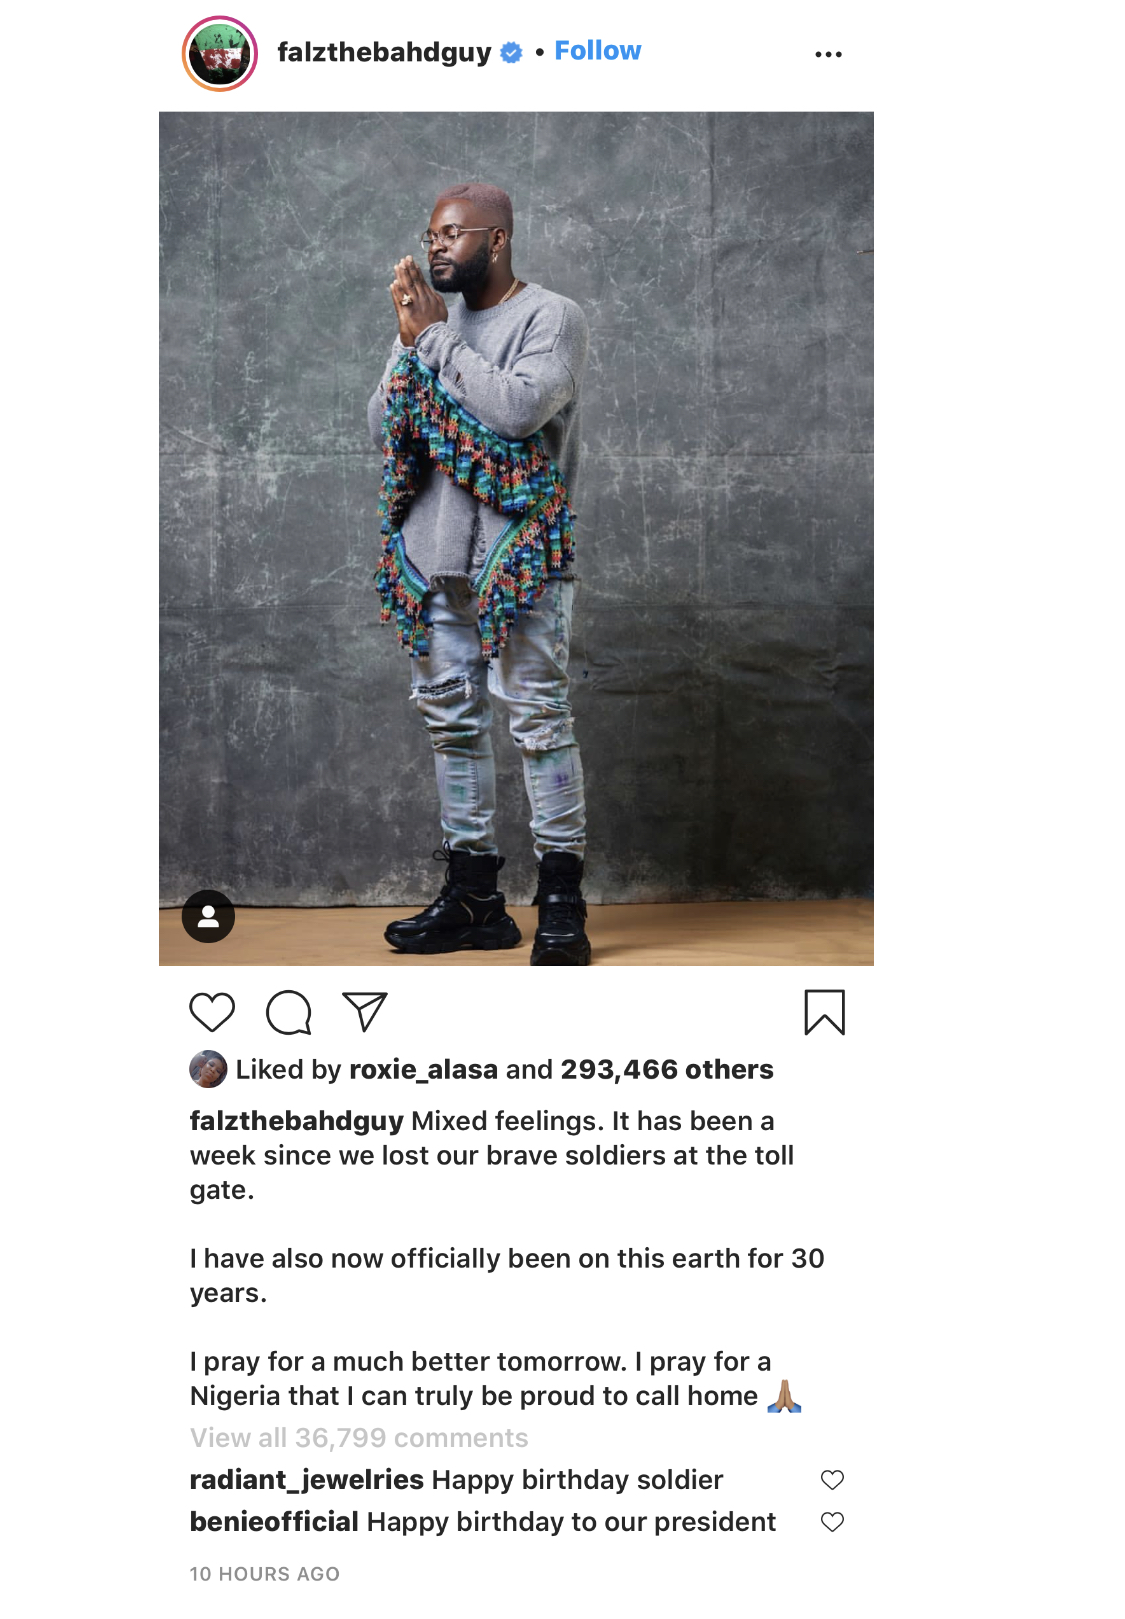 The rapper's post